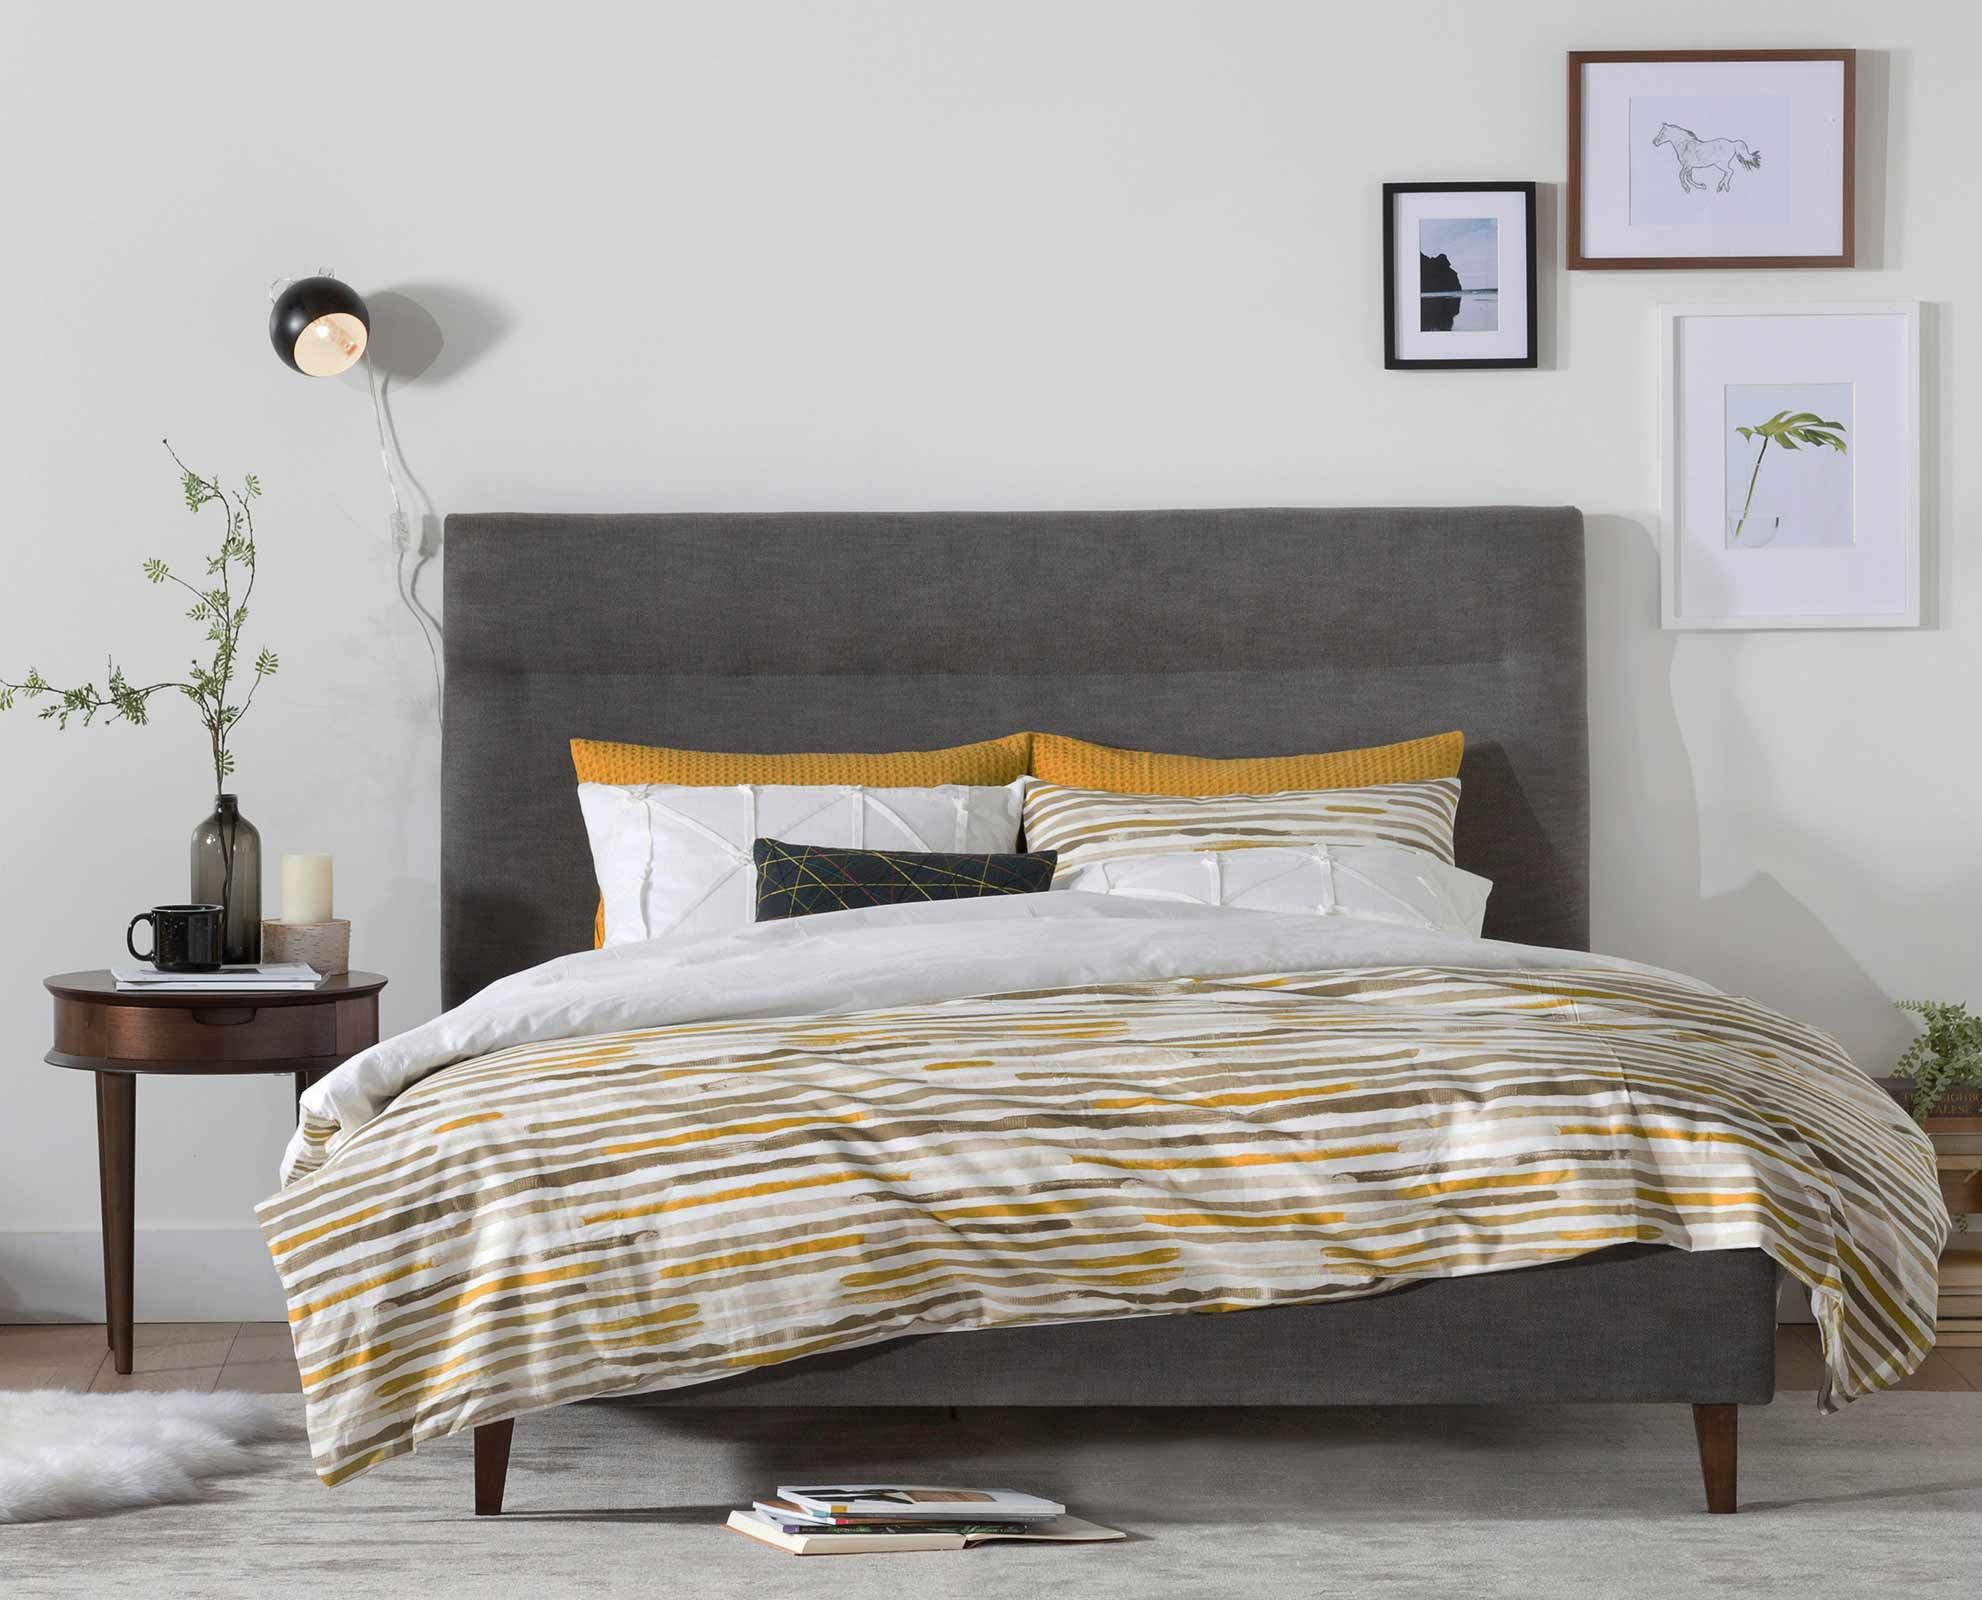 loccie upholstered extra sheet better headboard make size diamond king tall homes trend an tufted cotton